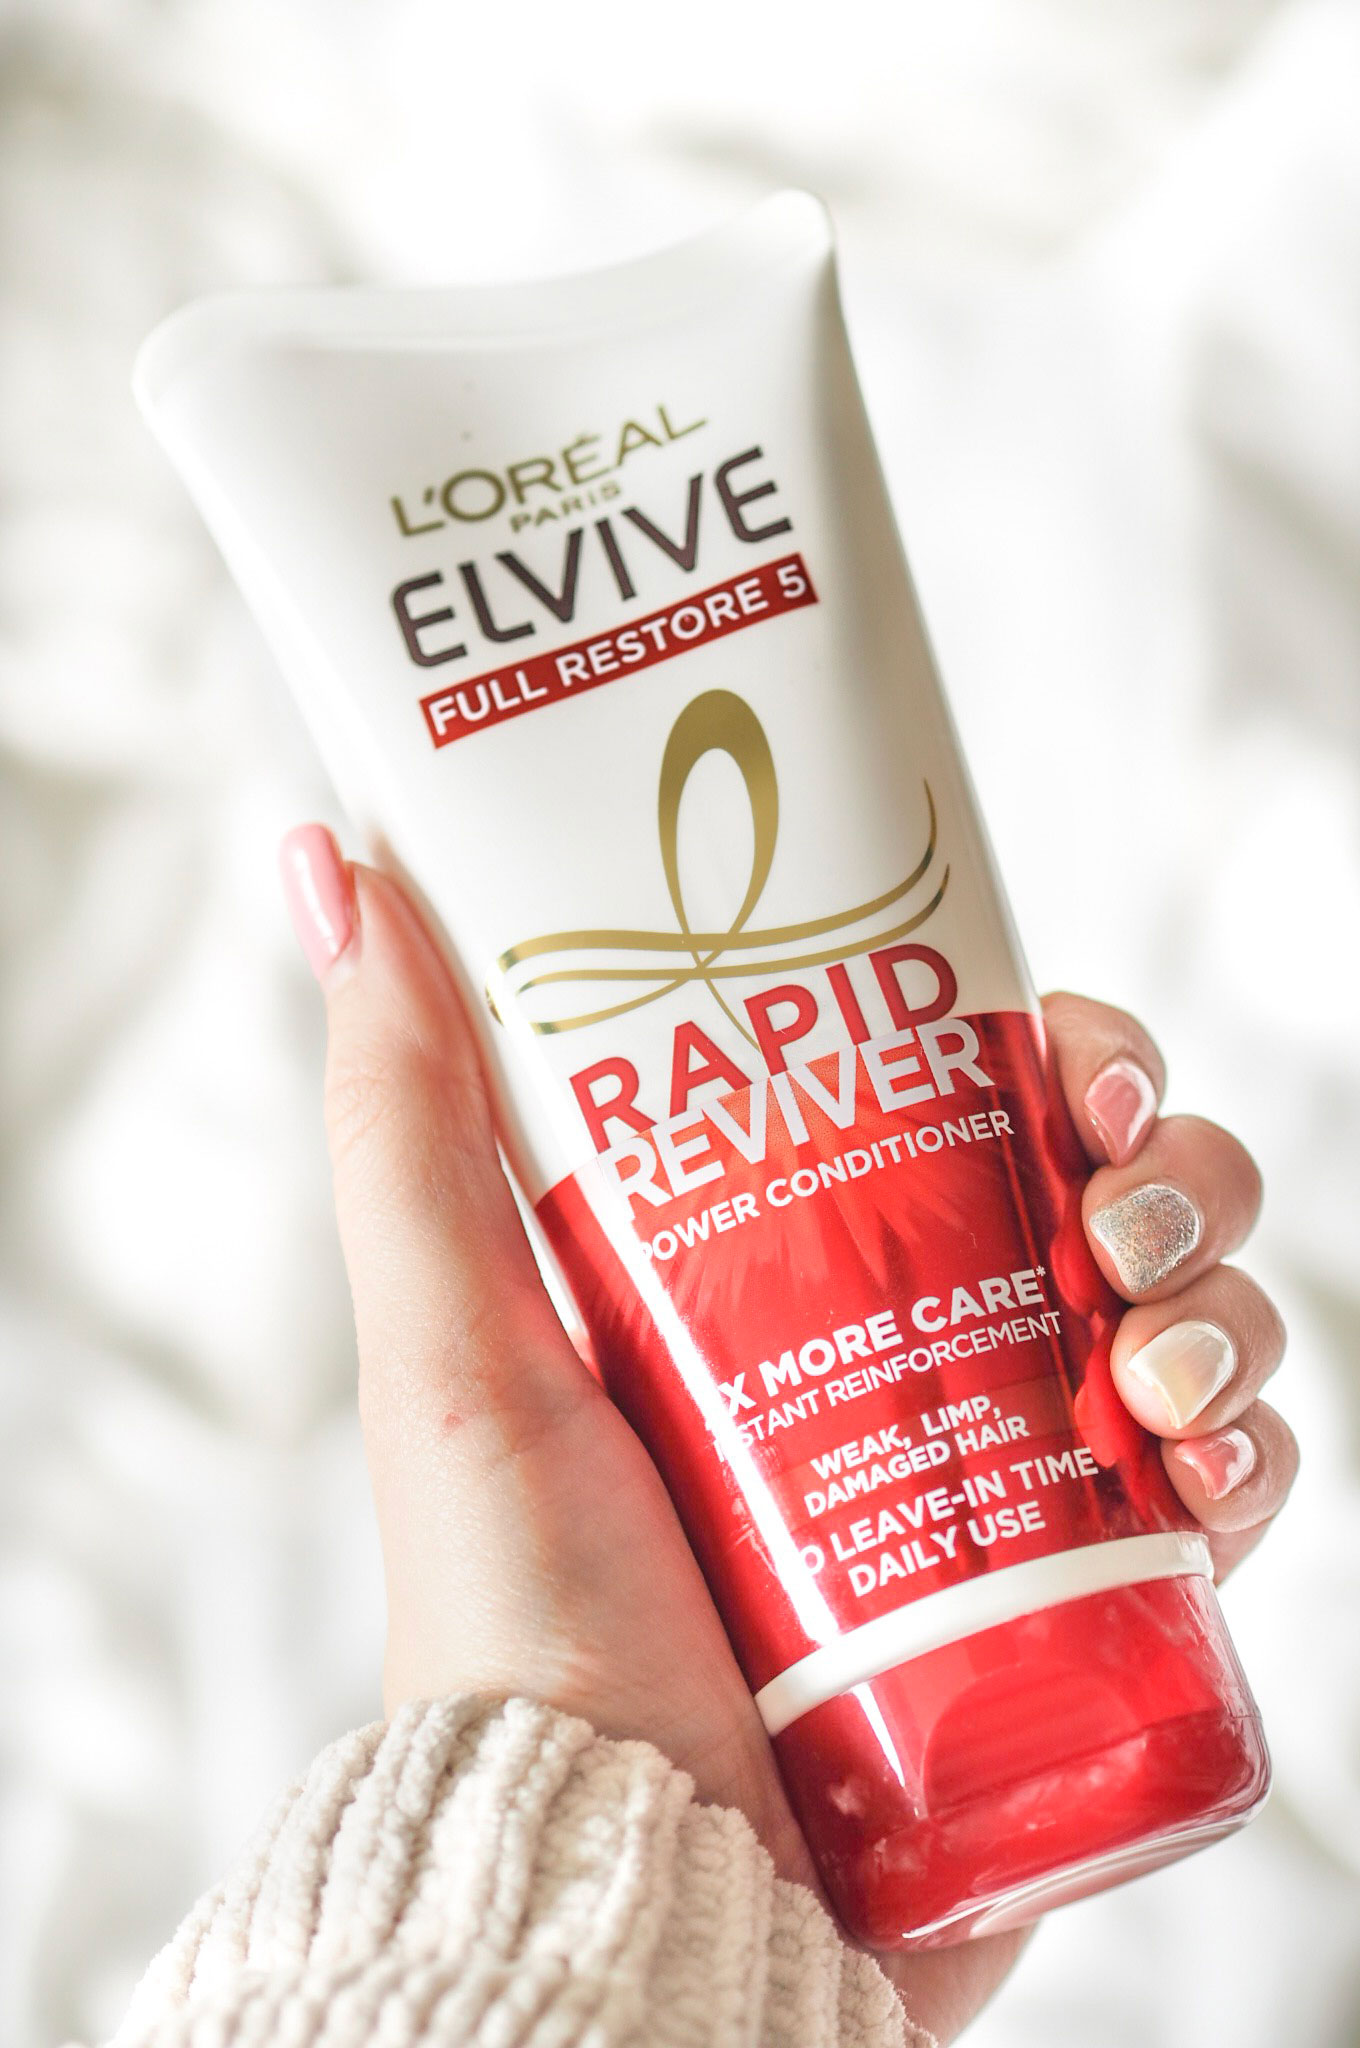 L'Oreal Elvive Rapid Reviver Conditioner Review